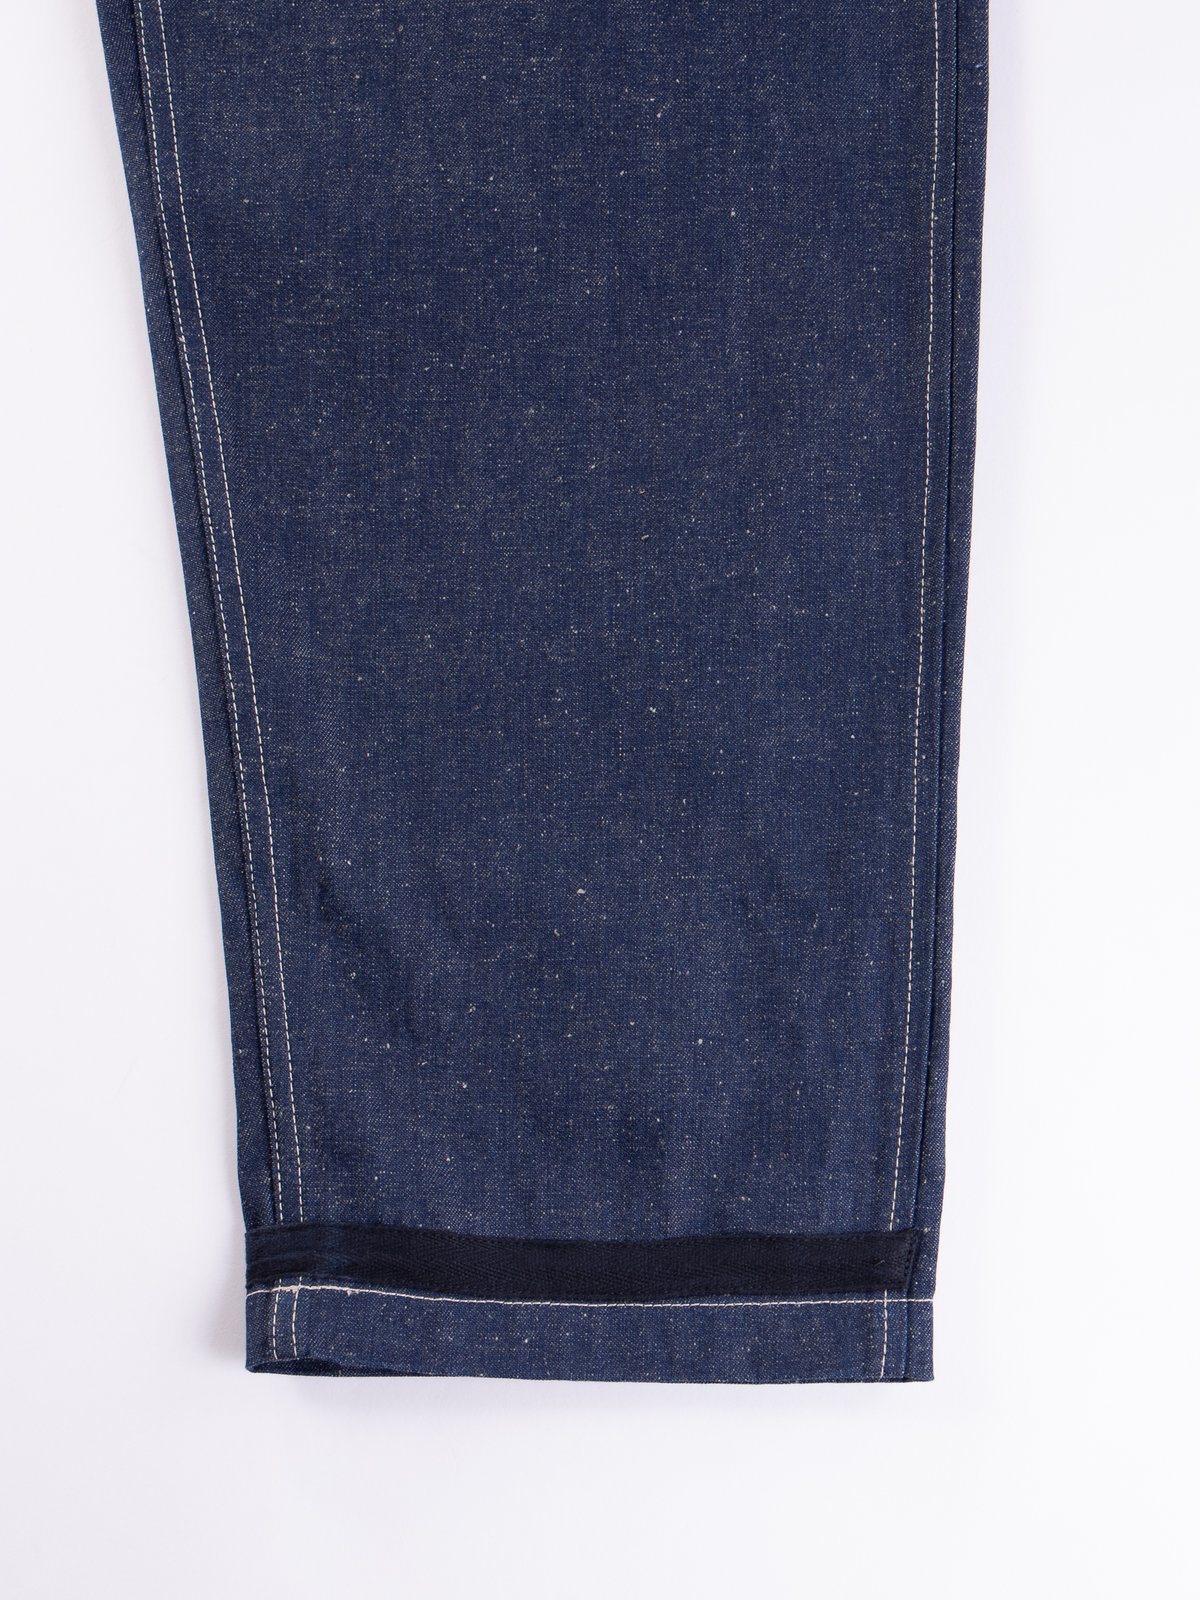 Lybro Split Denim/Navy Sateen Naval Dungaree - Image 4